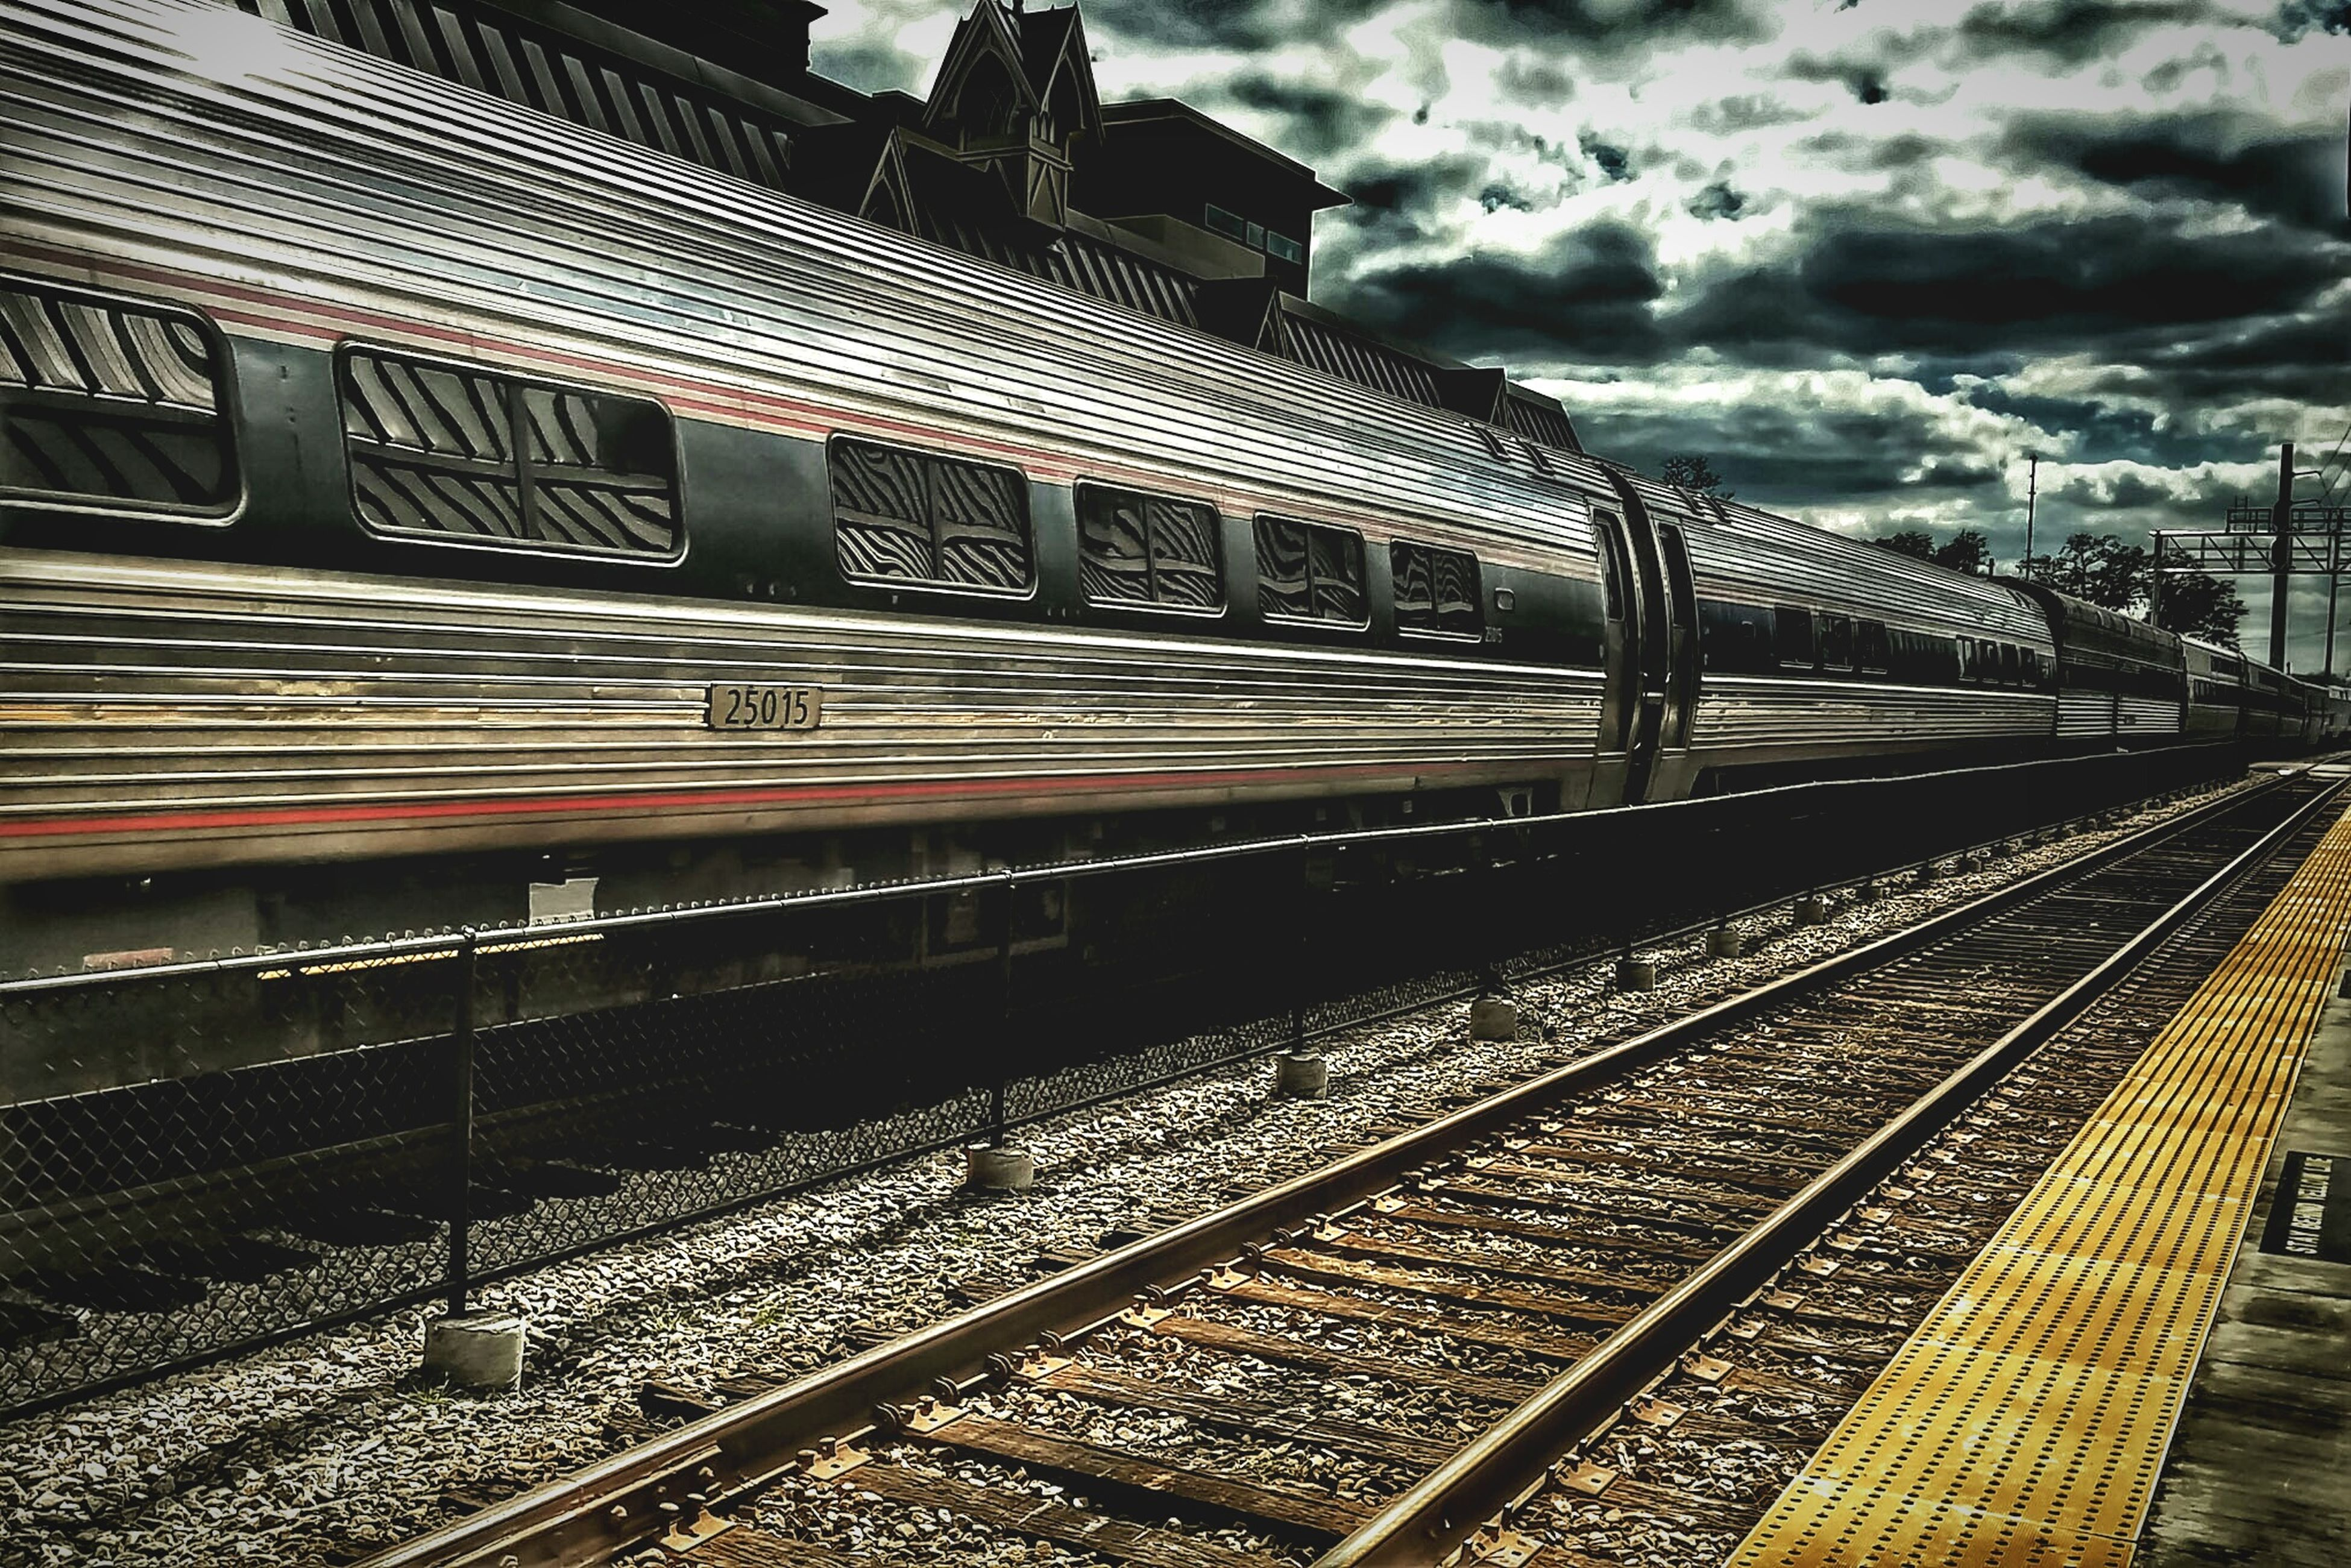 railroad track, rail transportation, sky, architecture, built structure, cloud - sky, railroad station, transportation, low angle view, railroad station platform, public transportation, cloudy, railing, building exterior, no people, steps, the way forward, metal, cloud, day